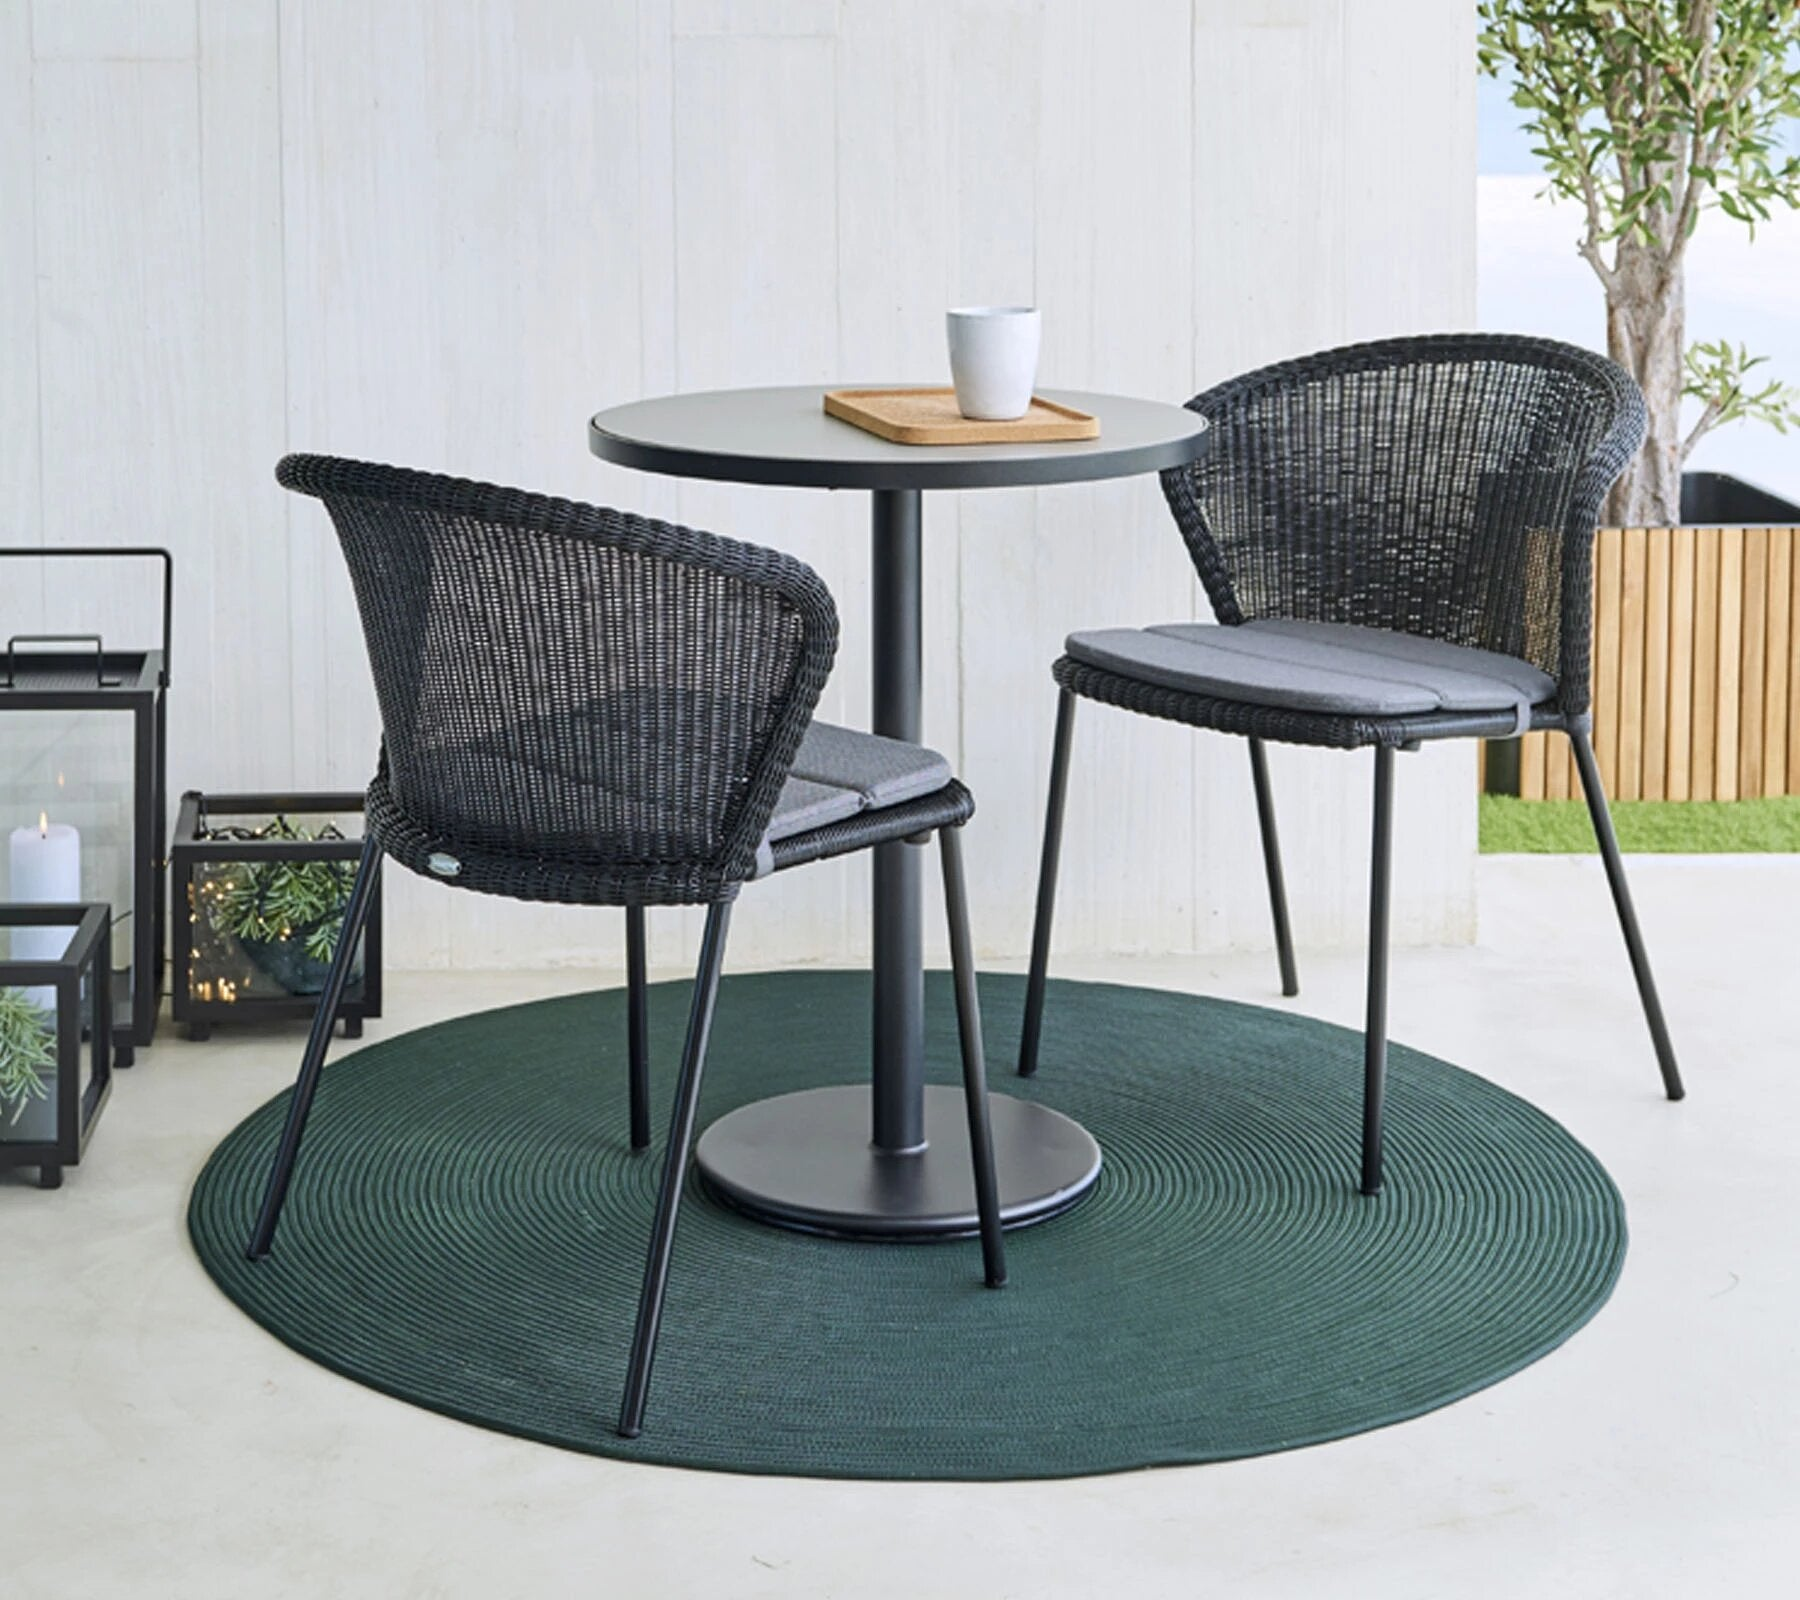 Infiinity Circular Outdoor Carpet